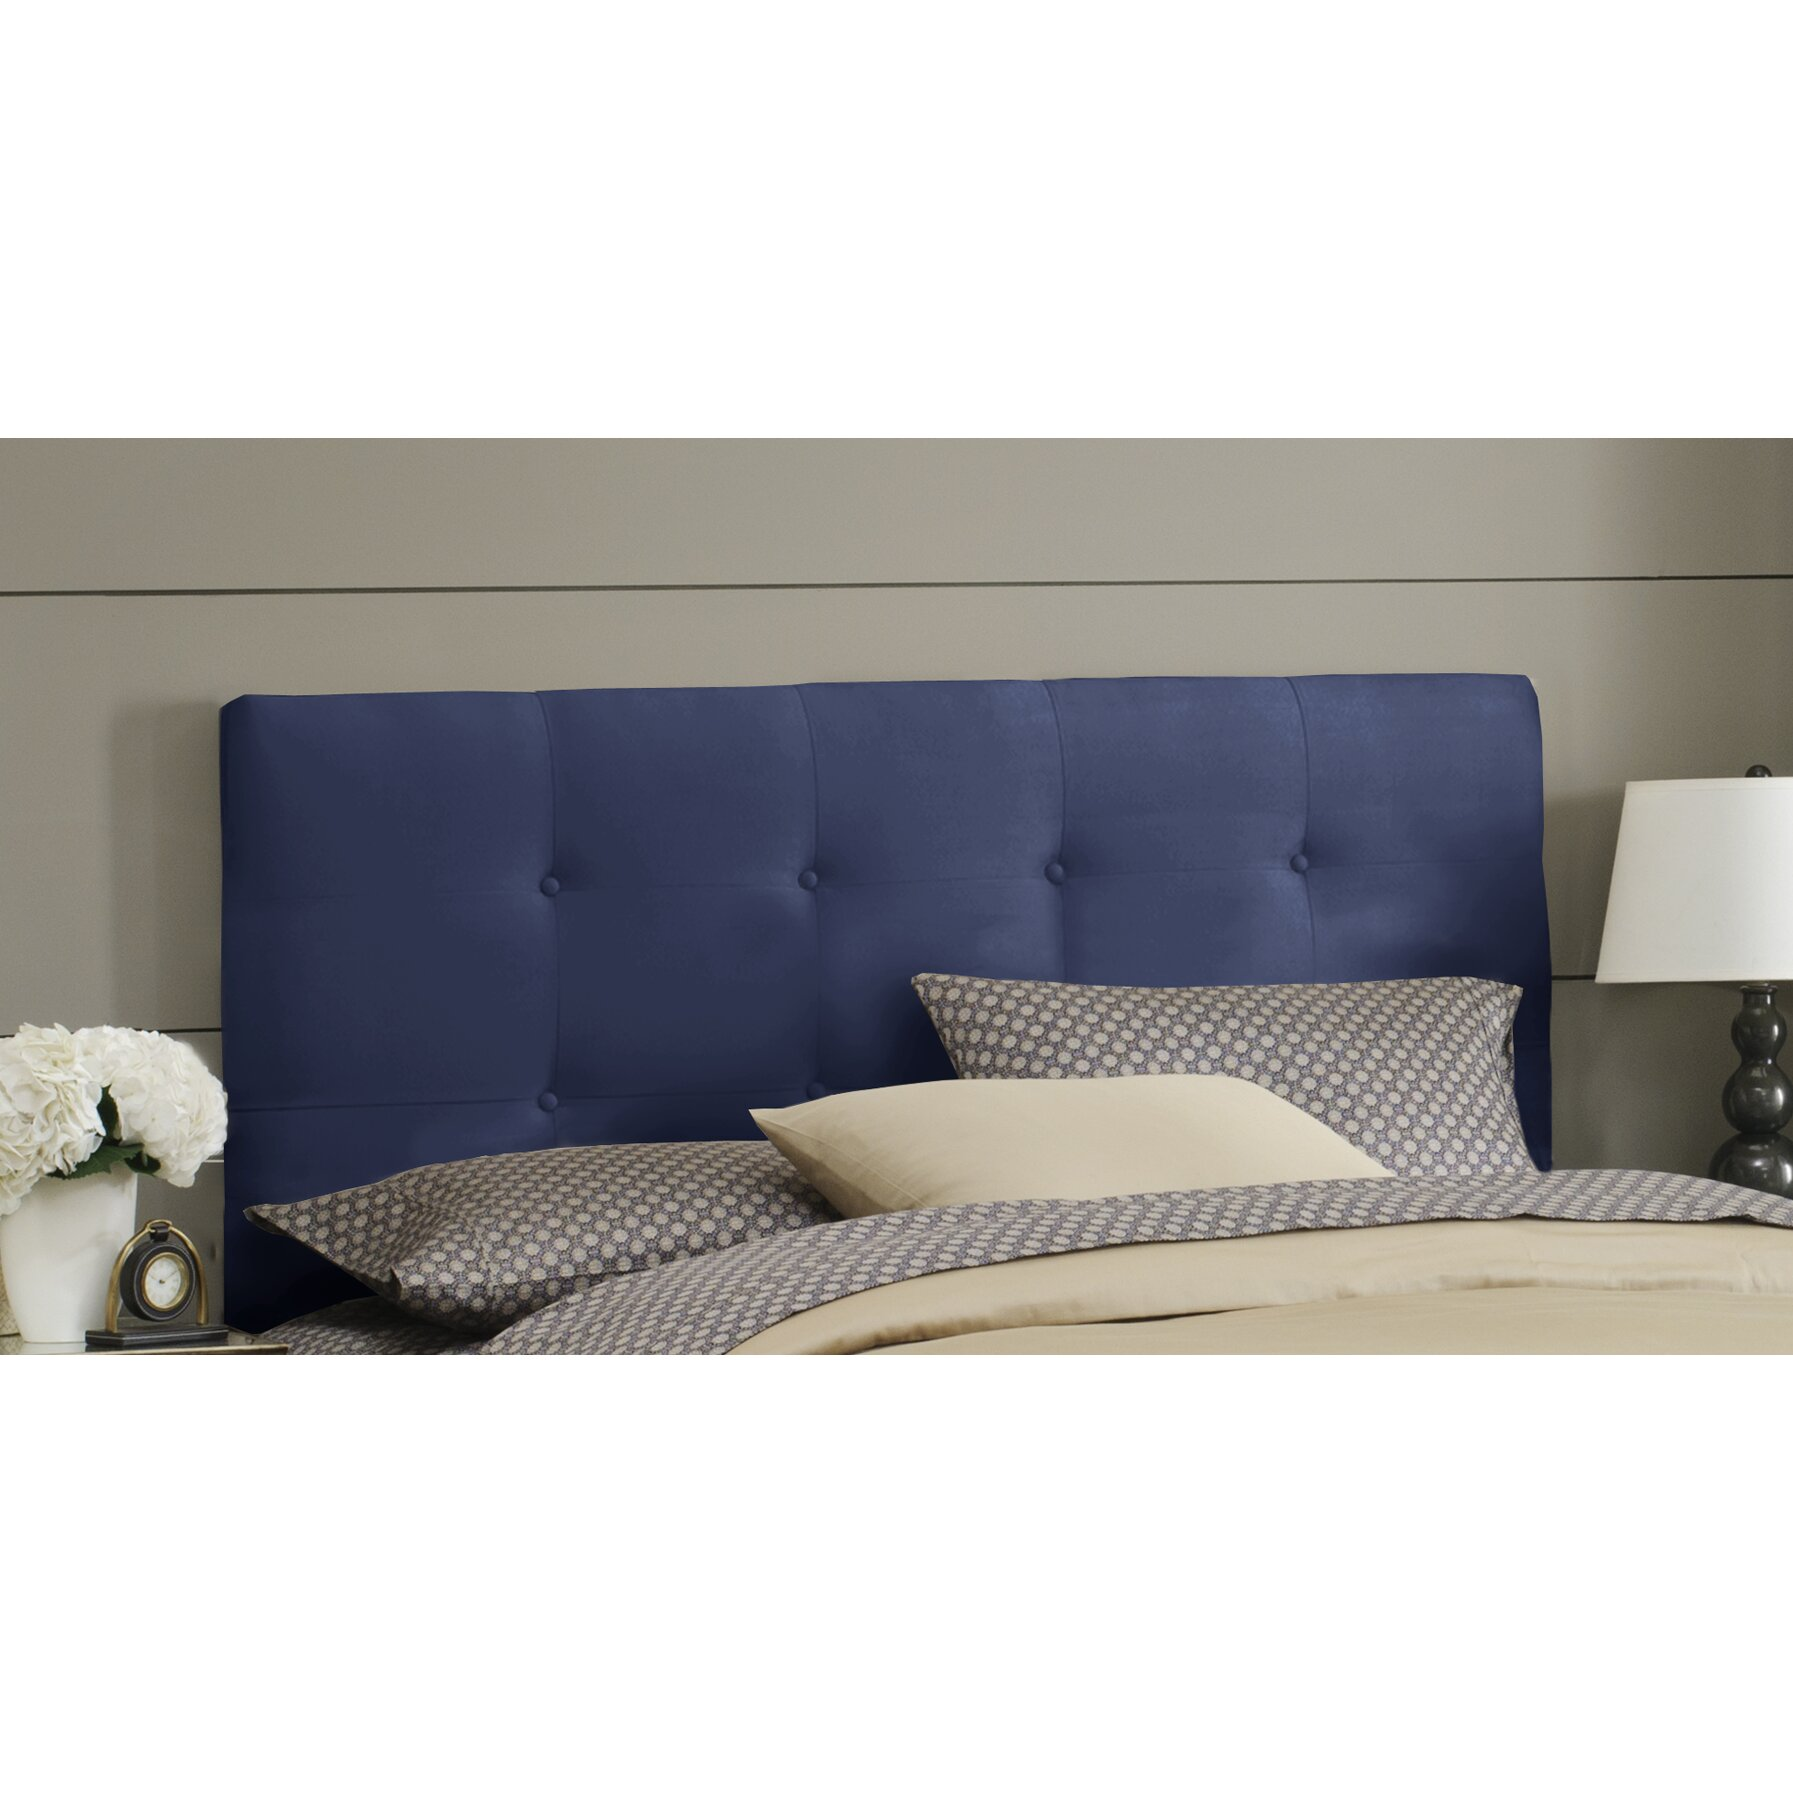 Skyline Furniture Double Button Tufted Upholstered